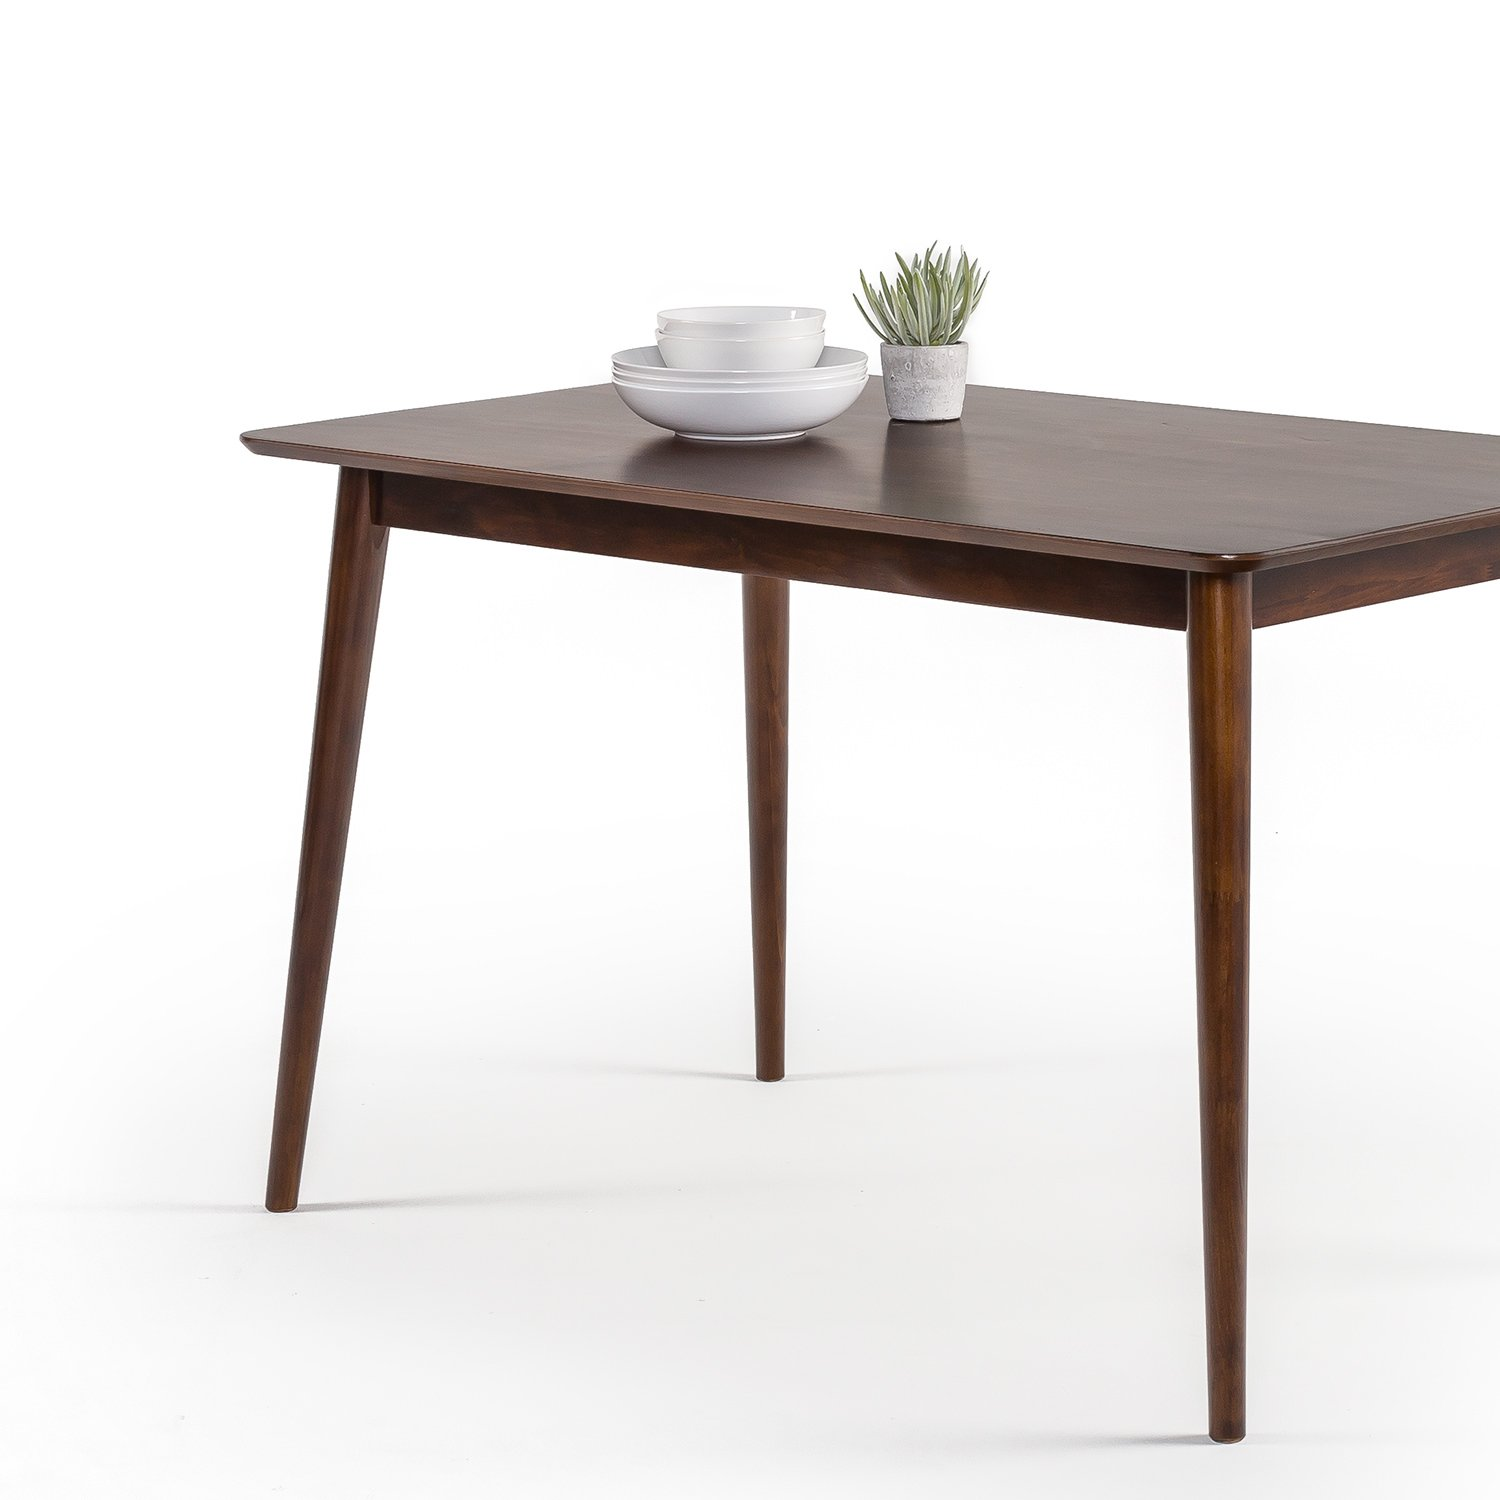 Zinus Jen Mid-Century Modern Wood Dining Table / Espresso by Zinus